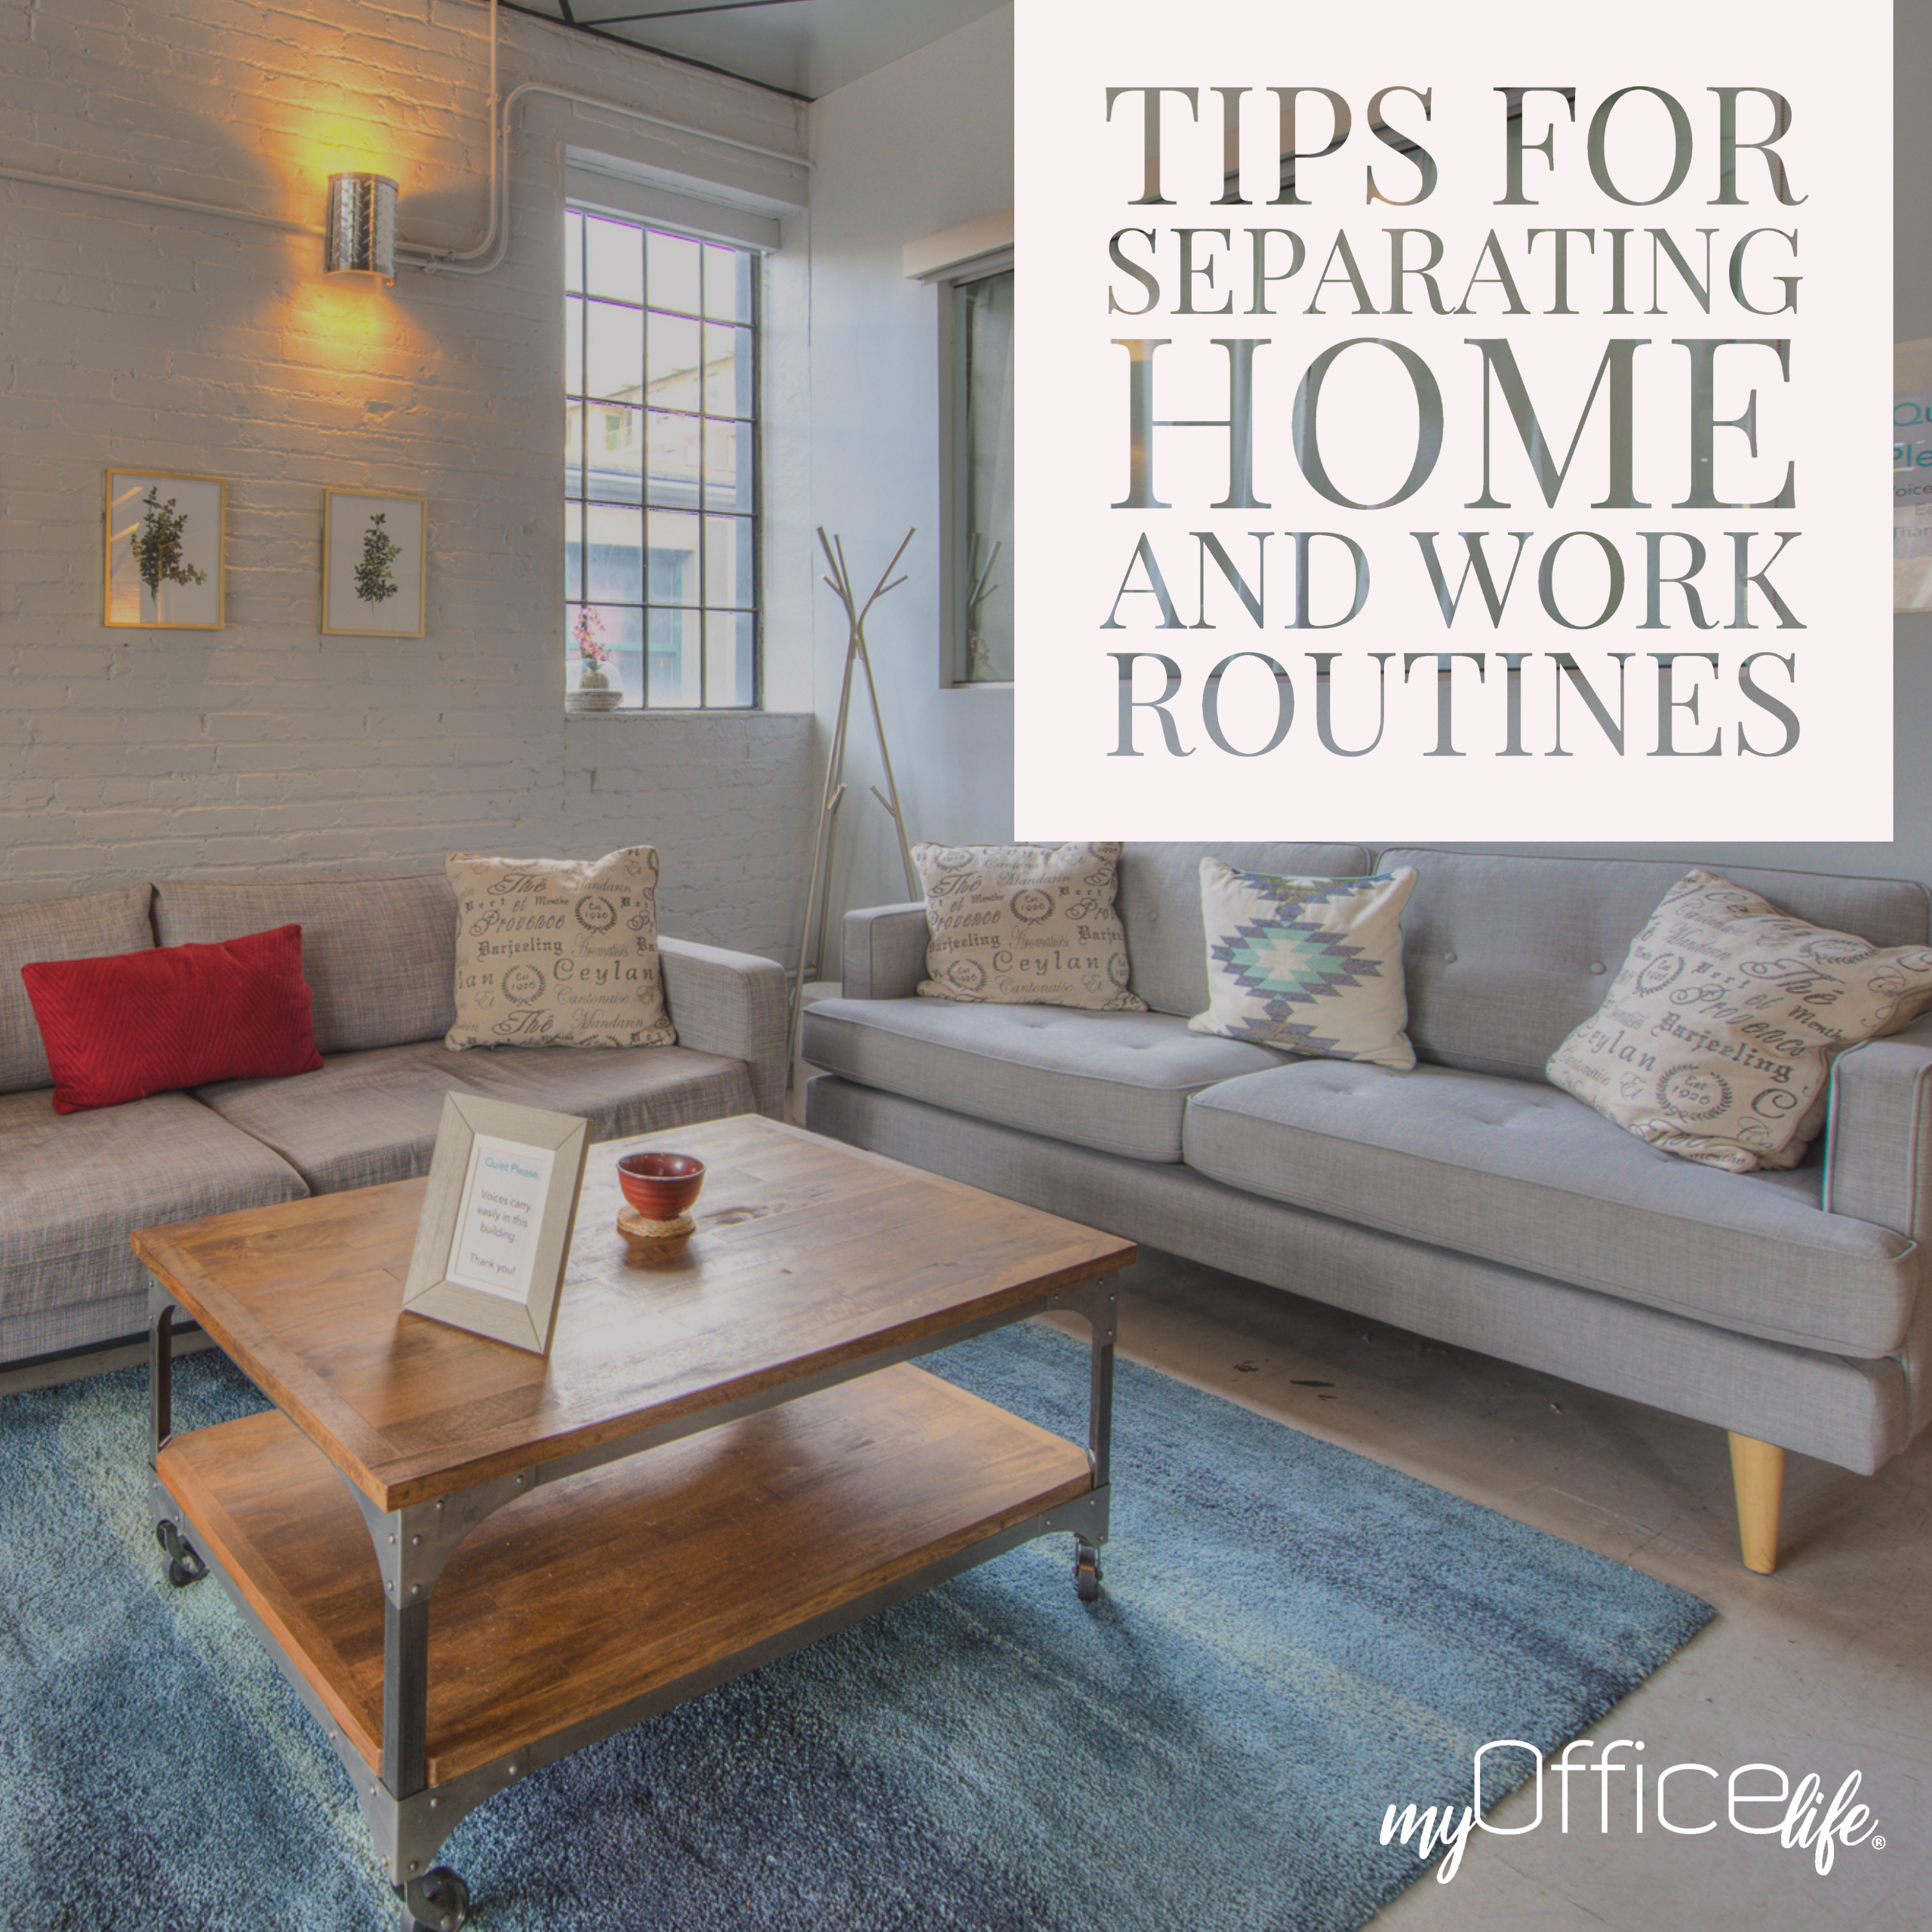 How to Keep Your Work and Home Time Separate